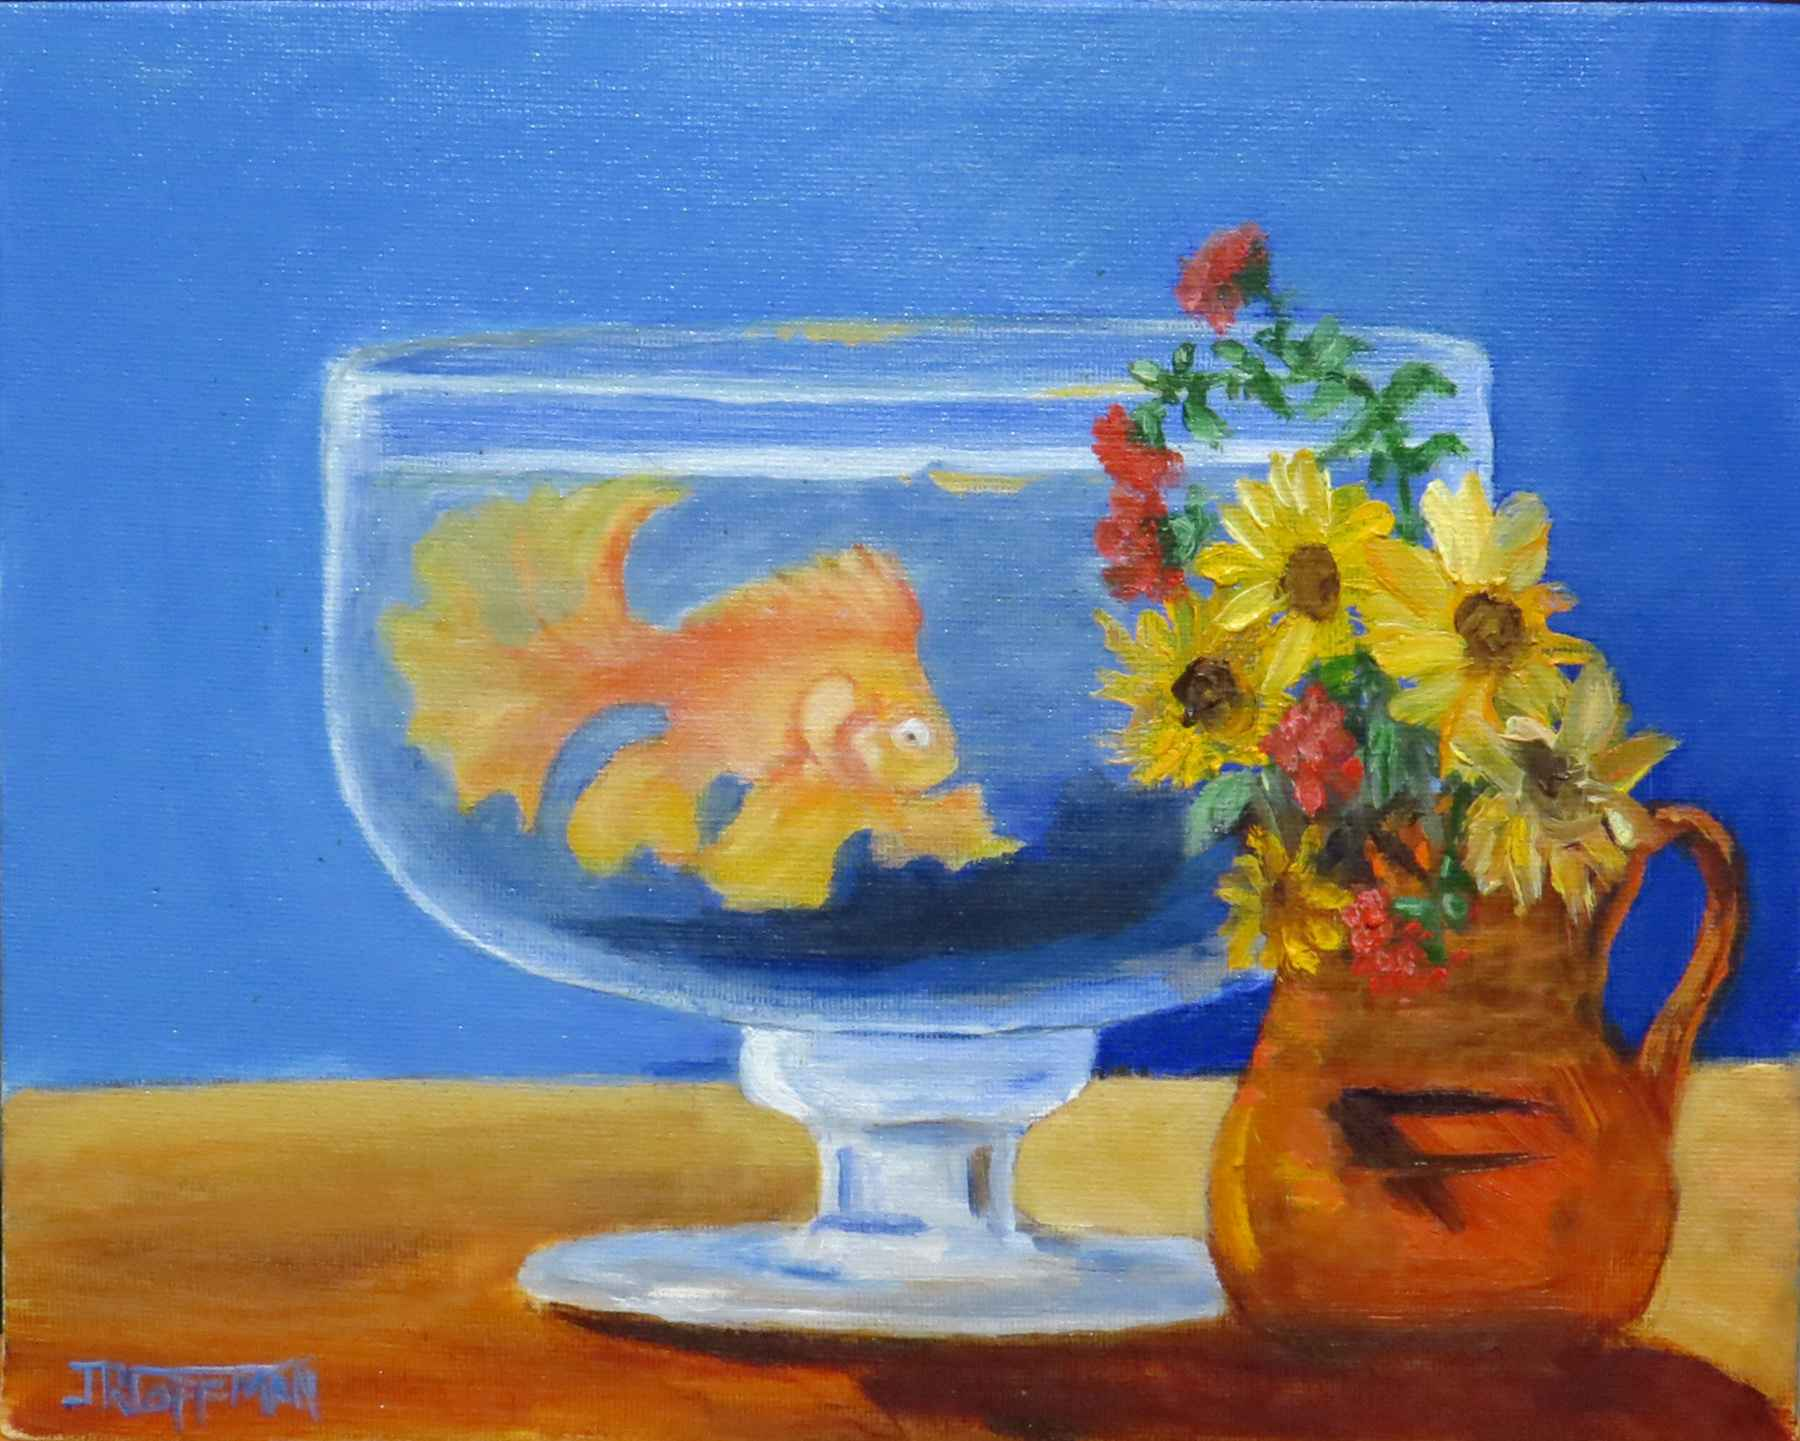 Flowers and a Fish by  Jim Coffman - Masterpiece Online